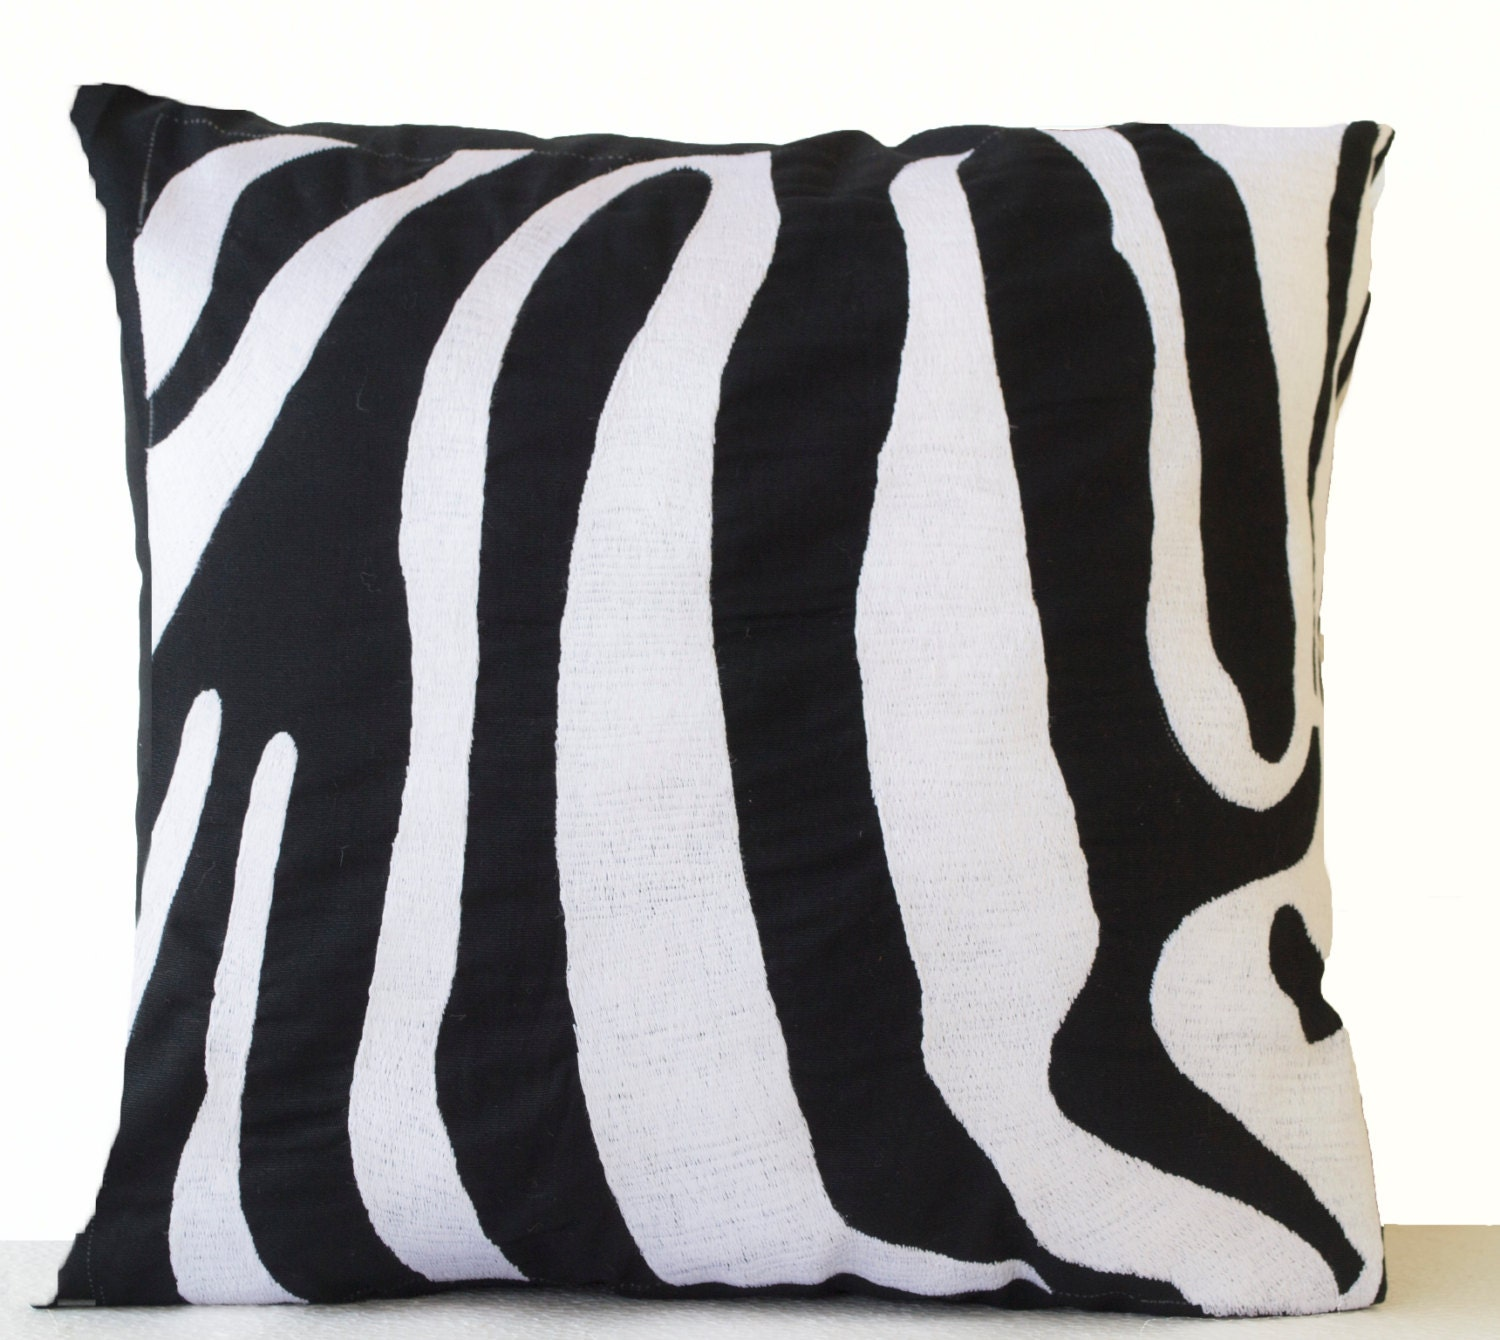 Zebra Decorative Pillows : Decorative Pillow Cushion Cover Zebra Striped Embroidered